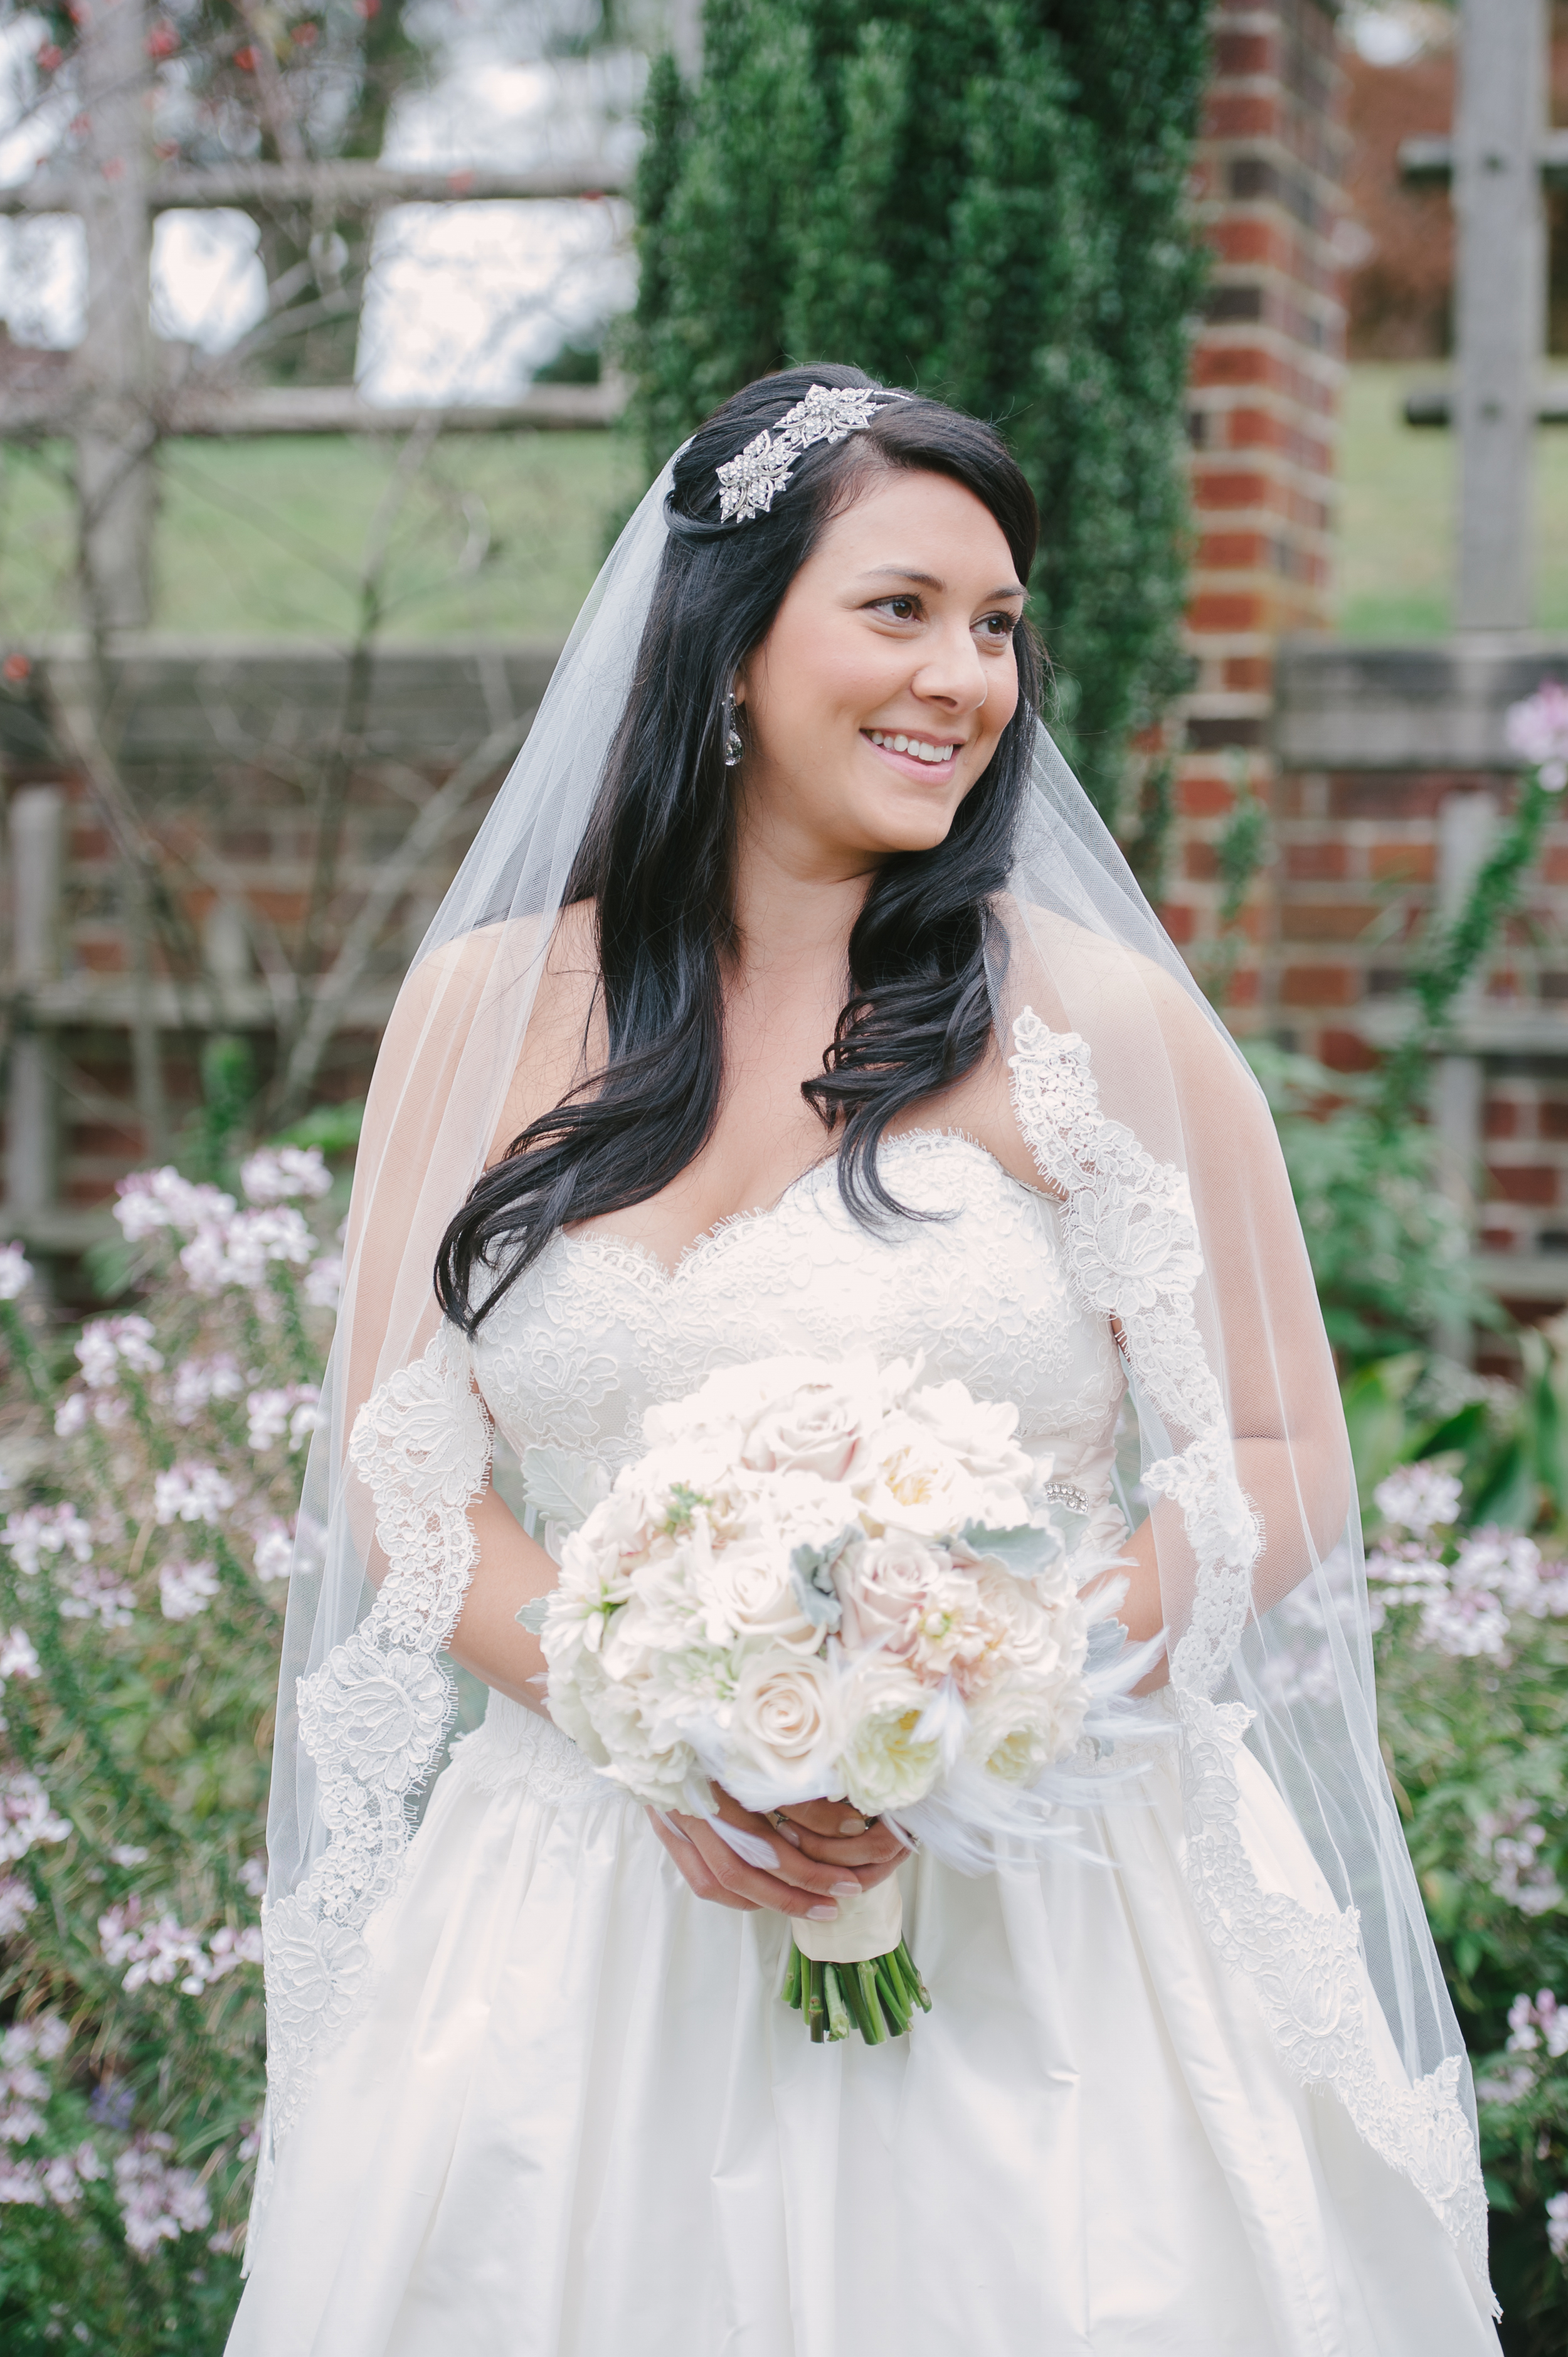 waveny_house_wedding_New_canaan_CT_Amy_Champagne_Events230.jpg